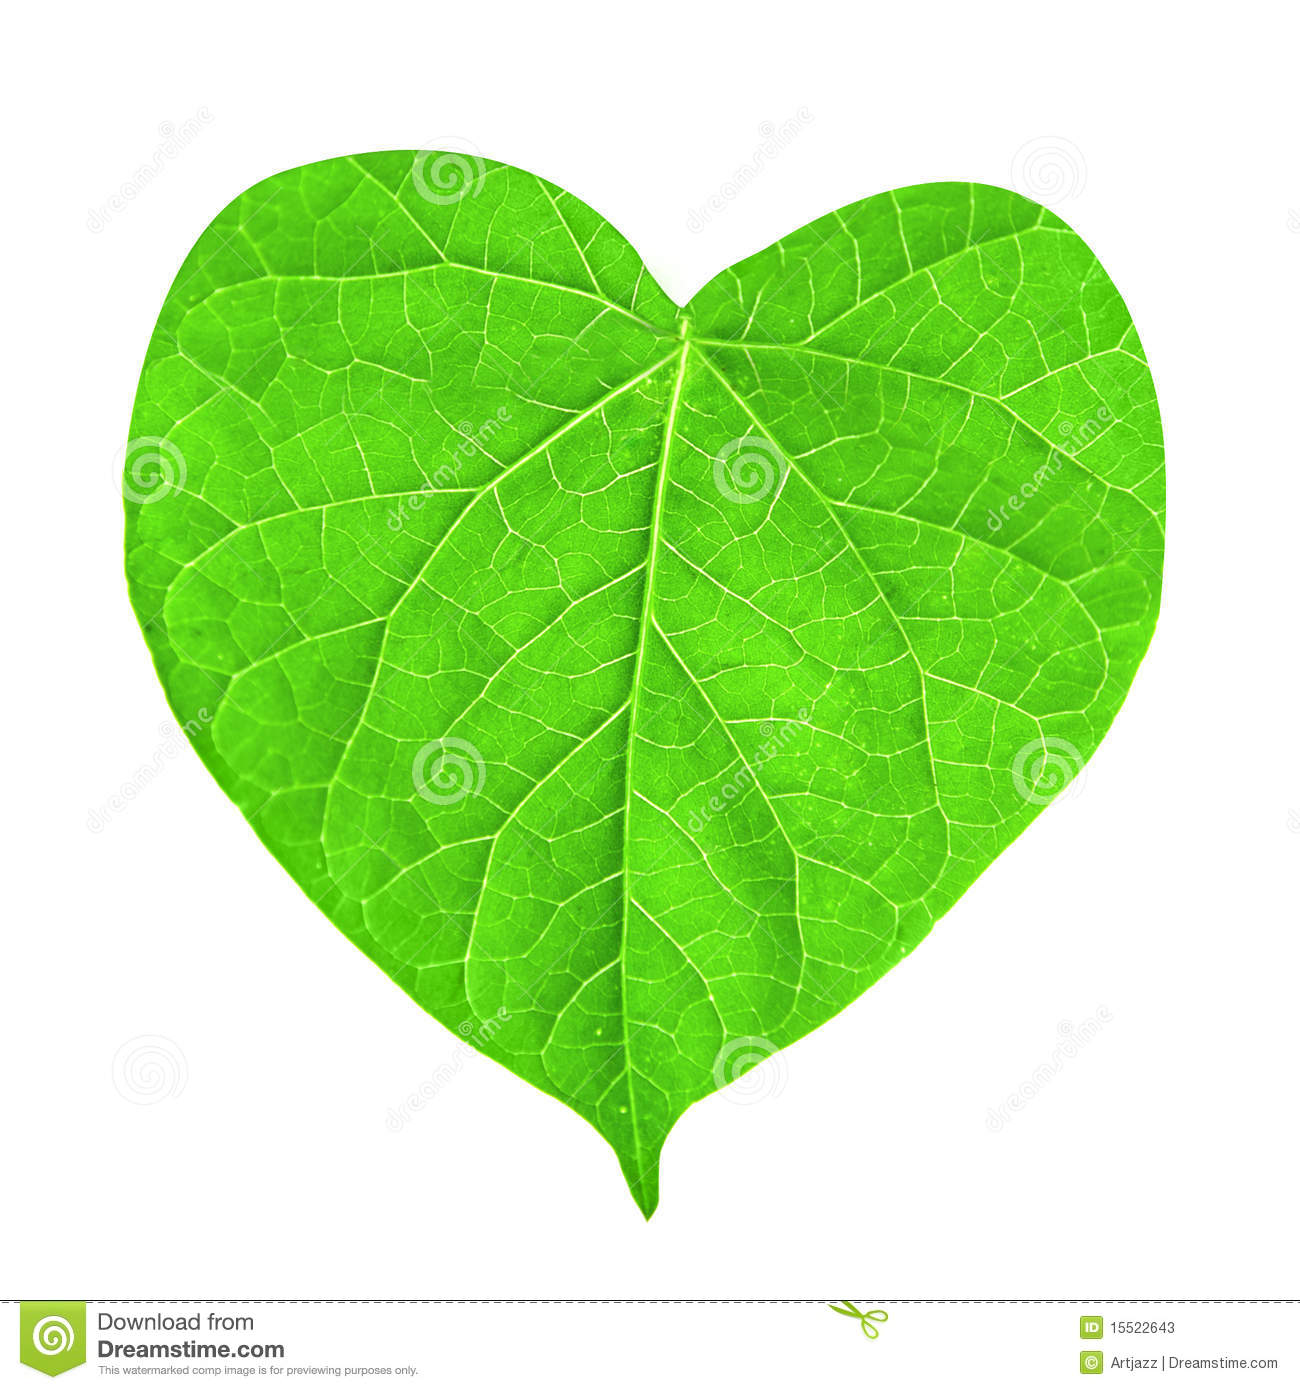 Green Leaf In Shape Of Heart Stock Image - Image of garden